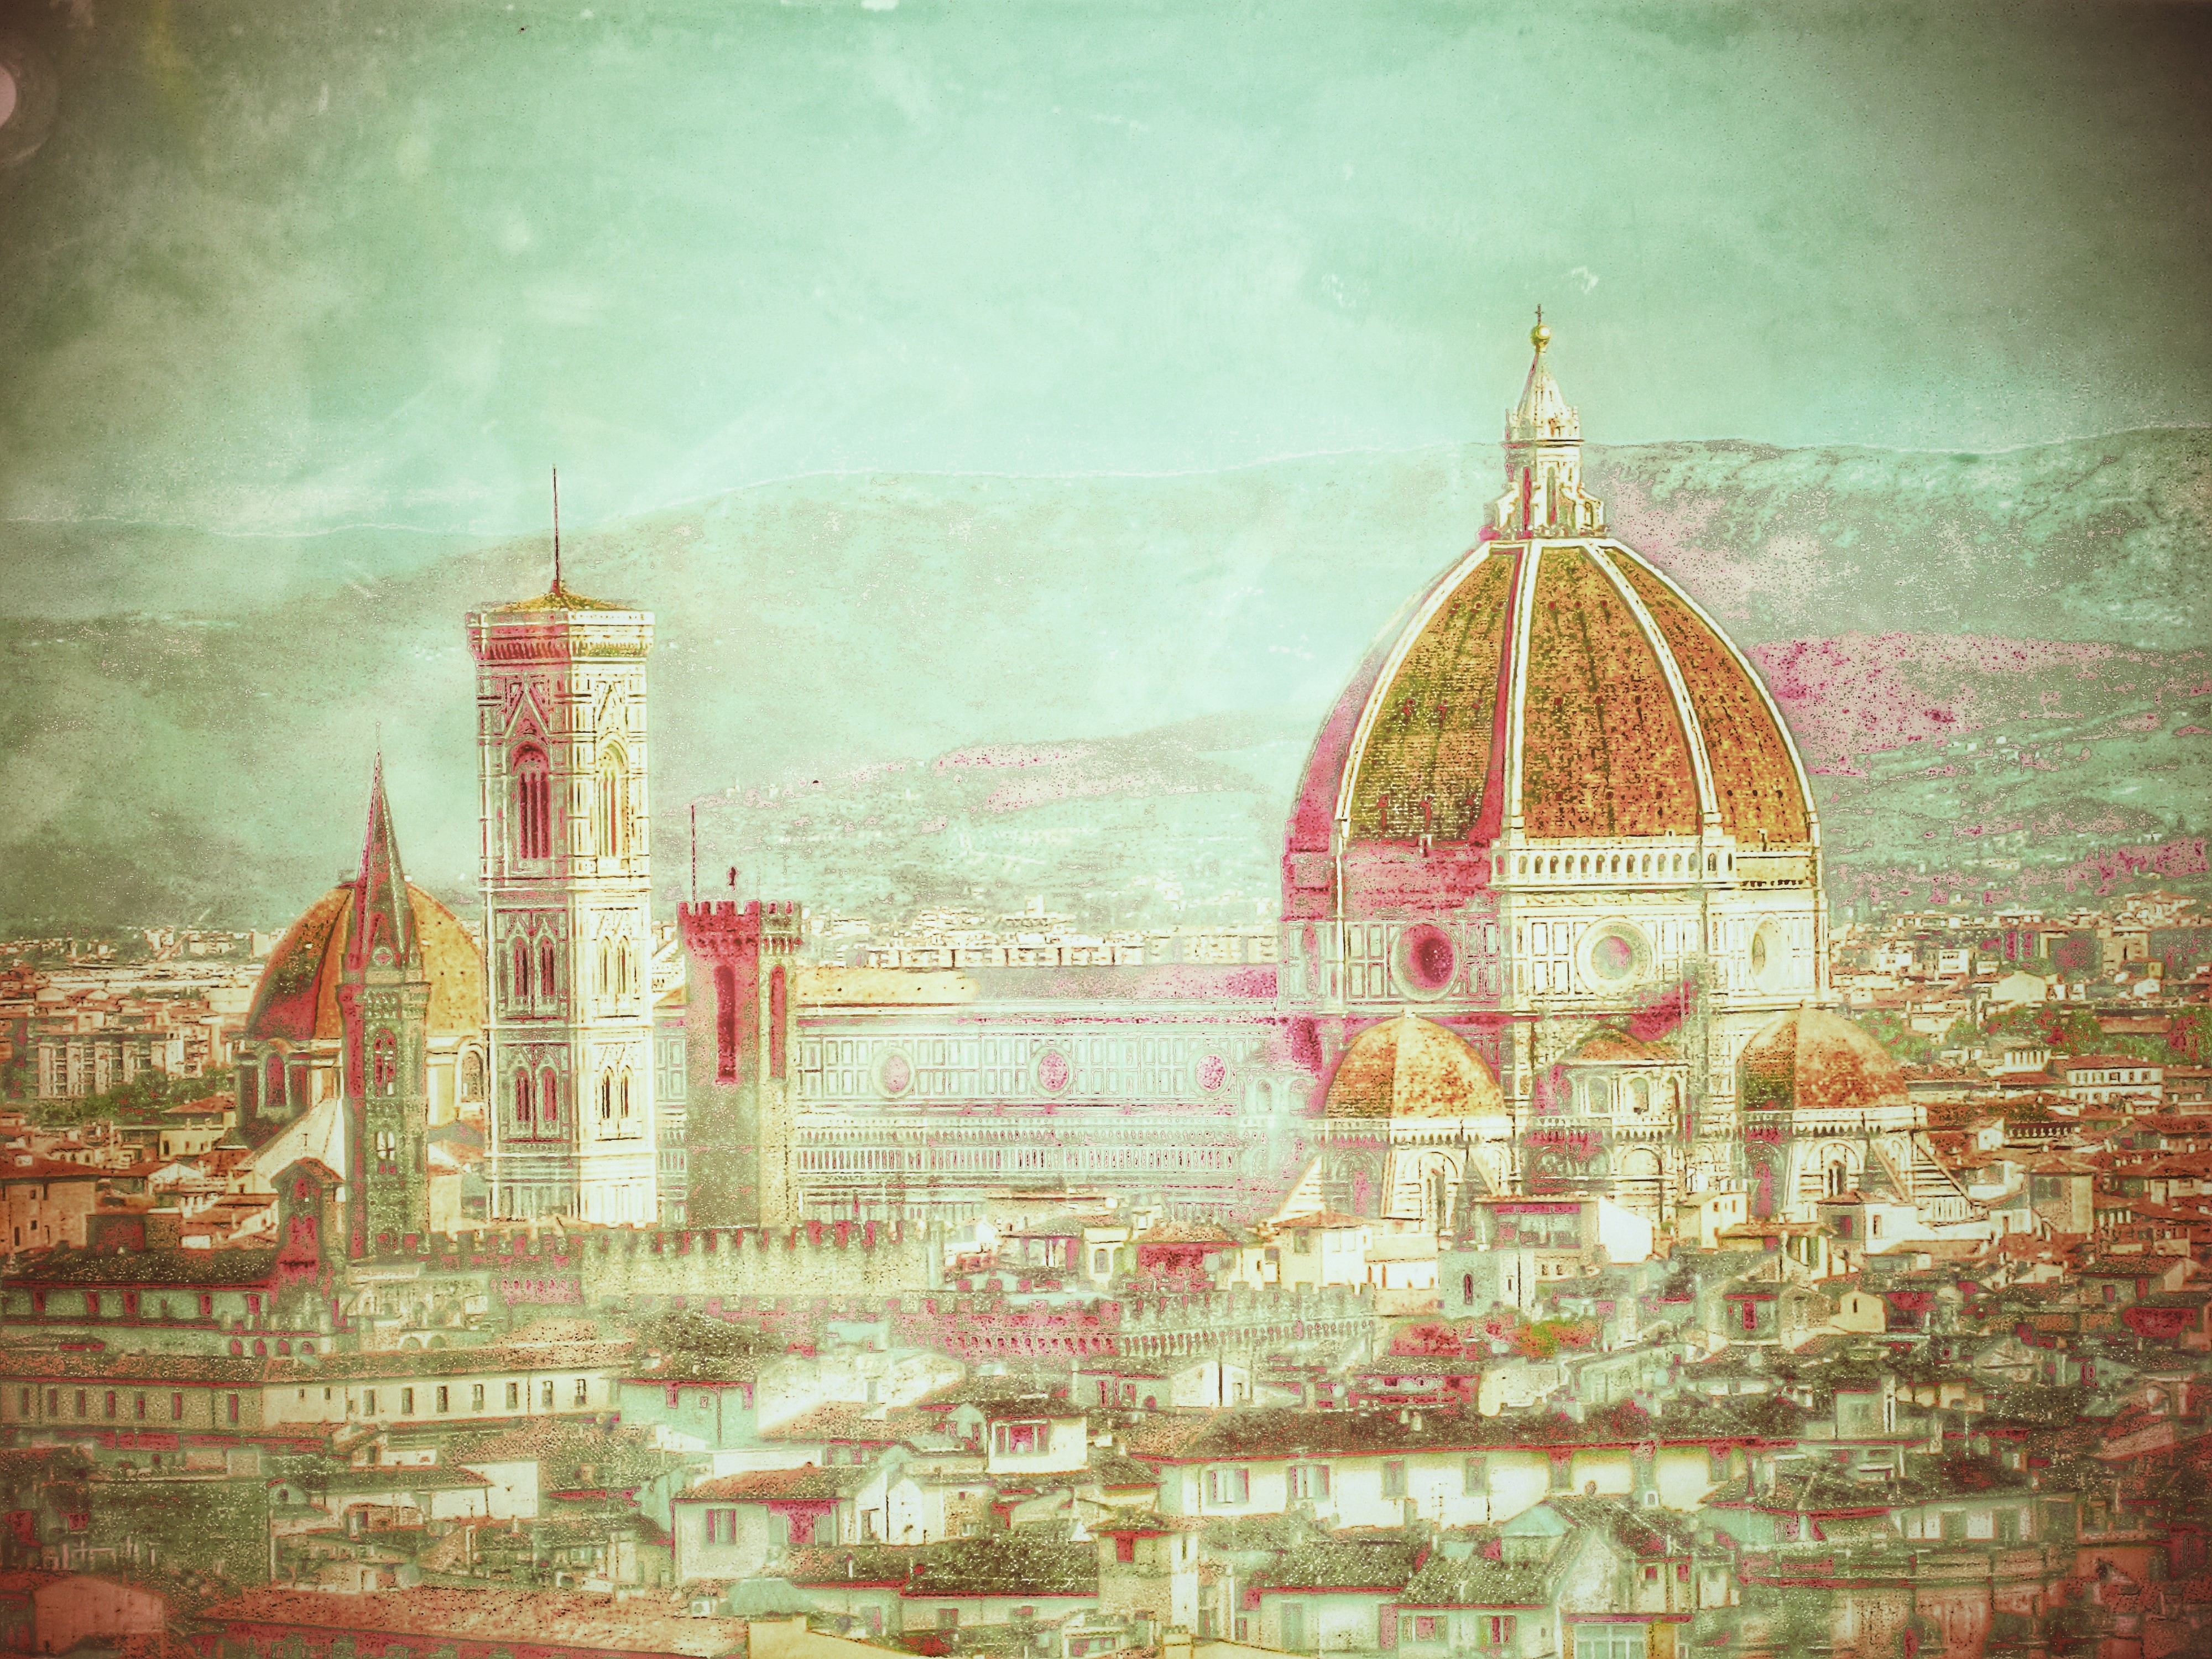 Painted Florence: Il Duomo